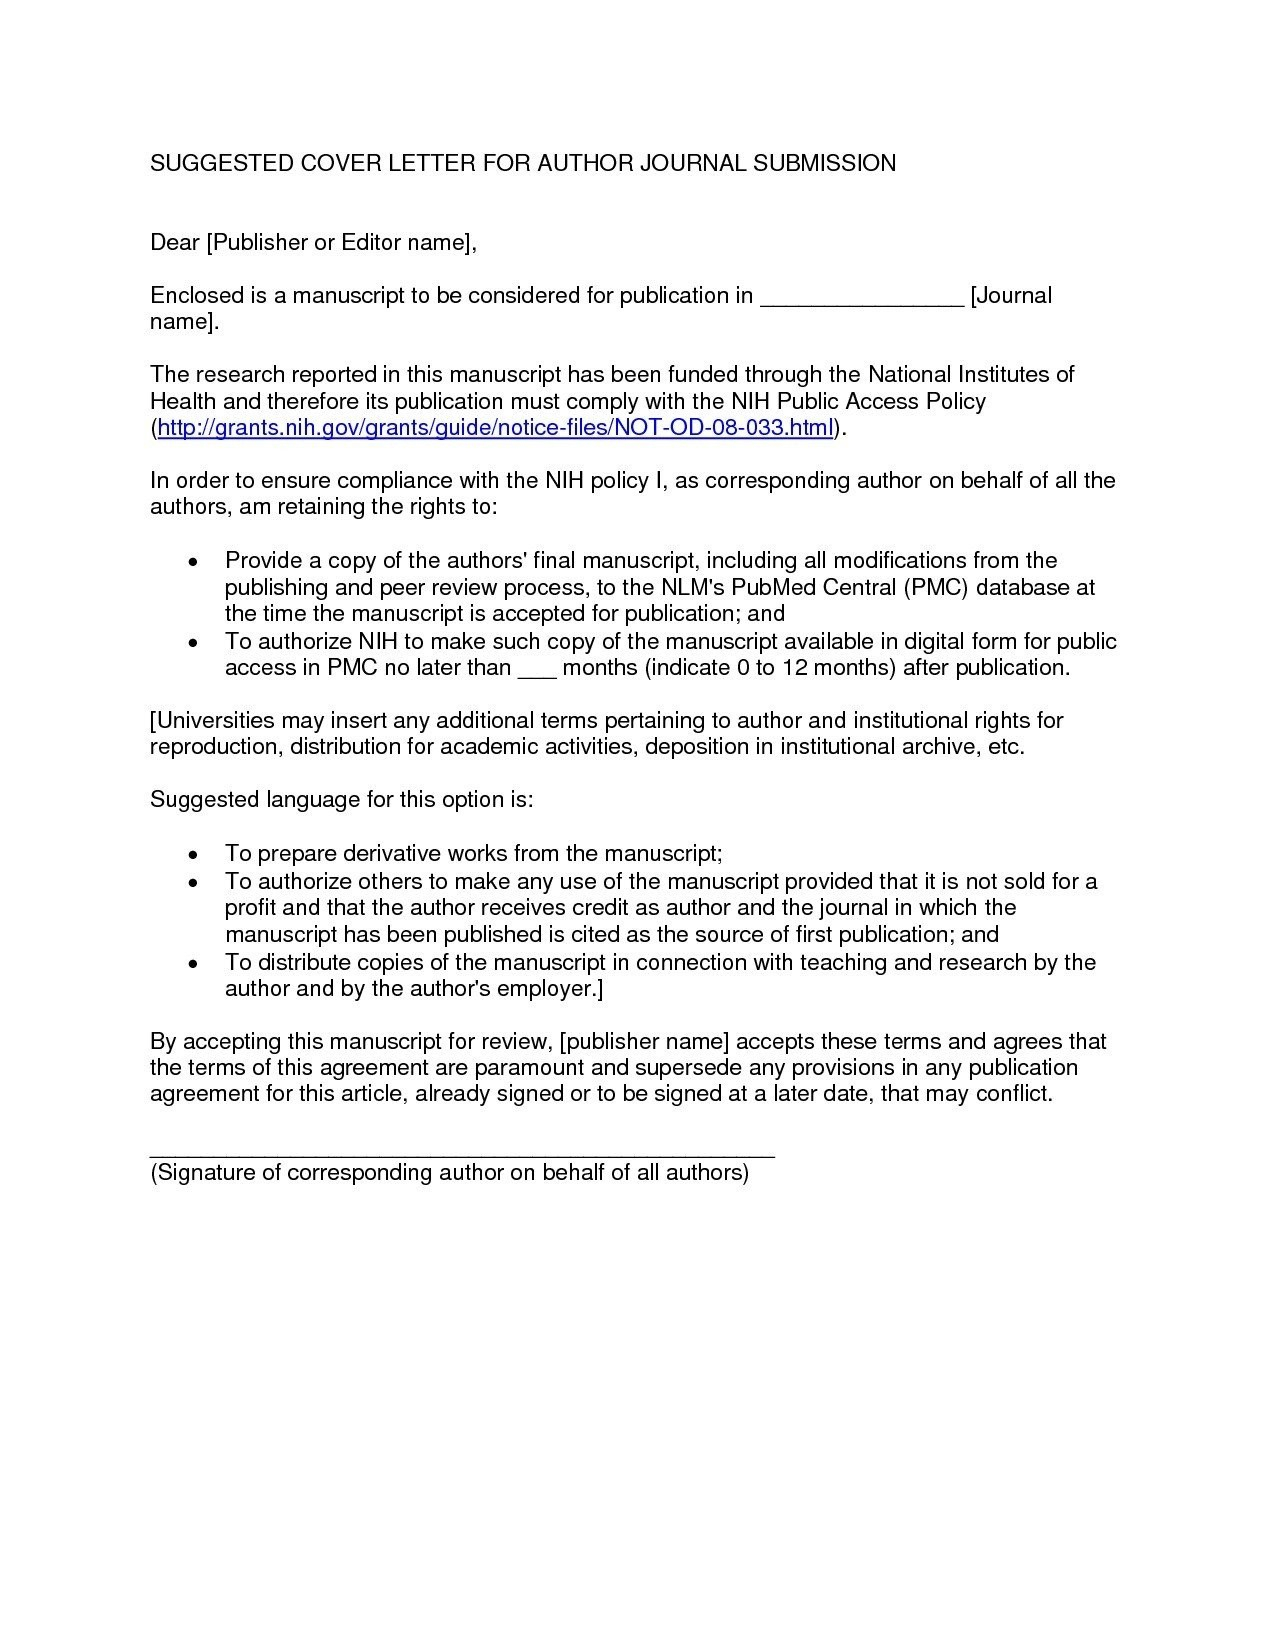 Template for Trust Distribution Letter Of Instructions - Estate Distribution Letter Template